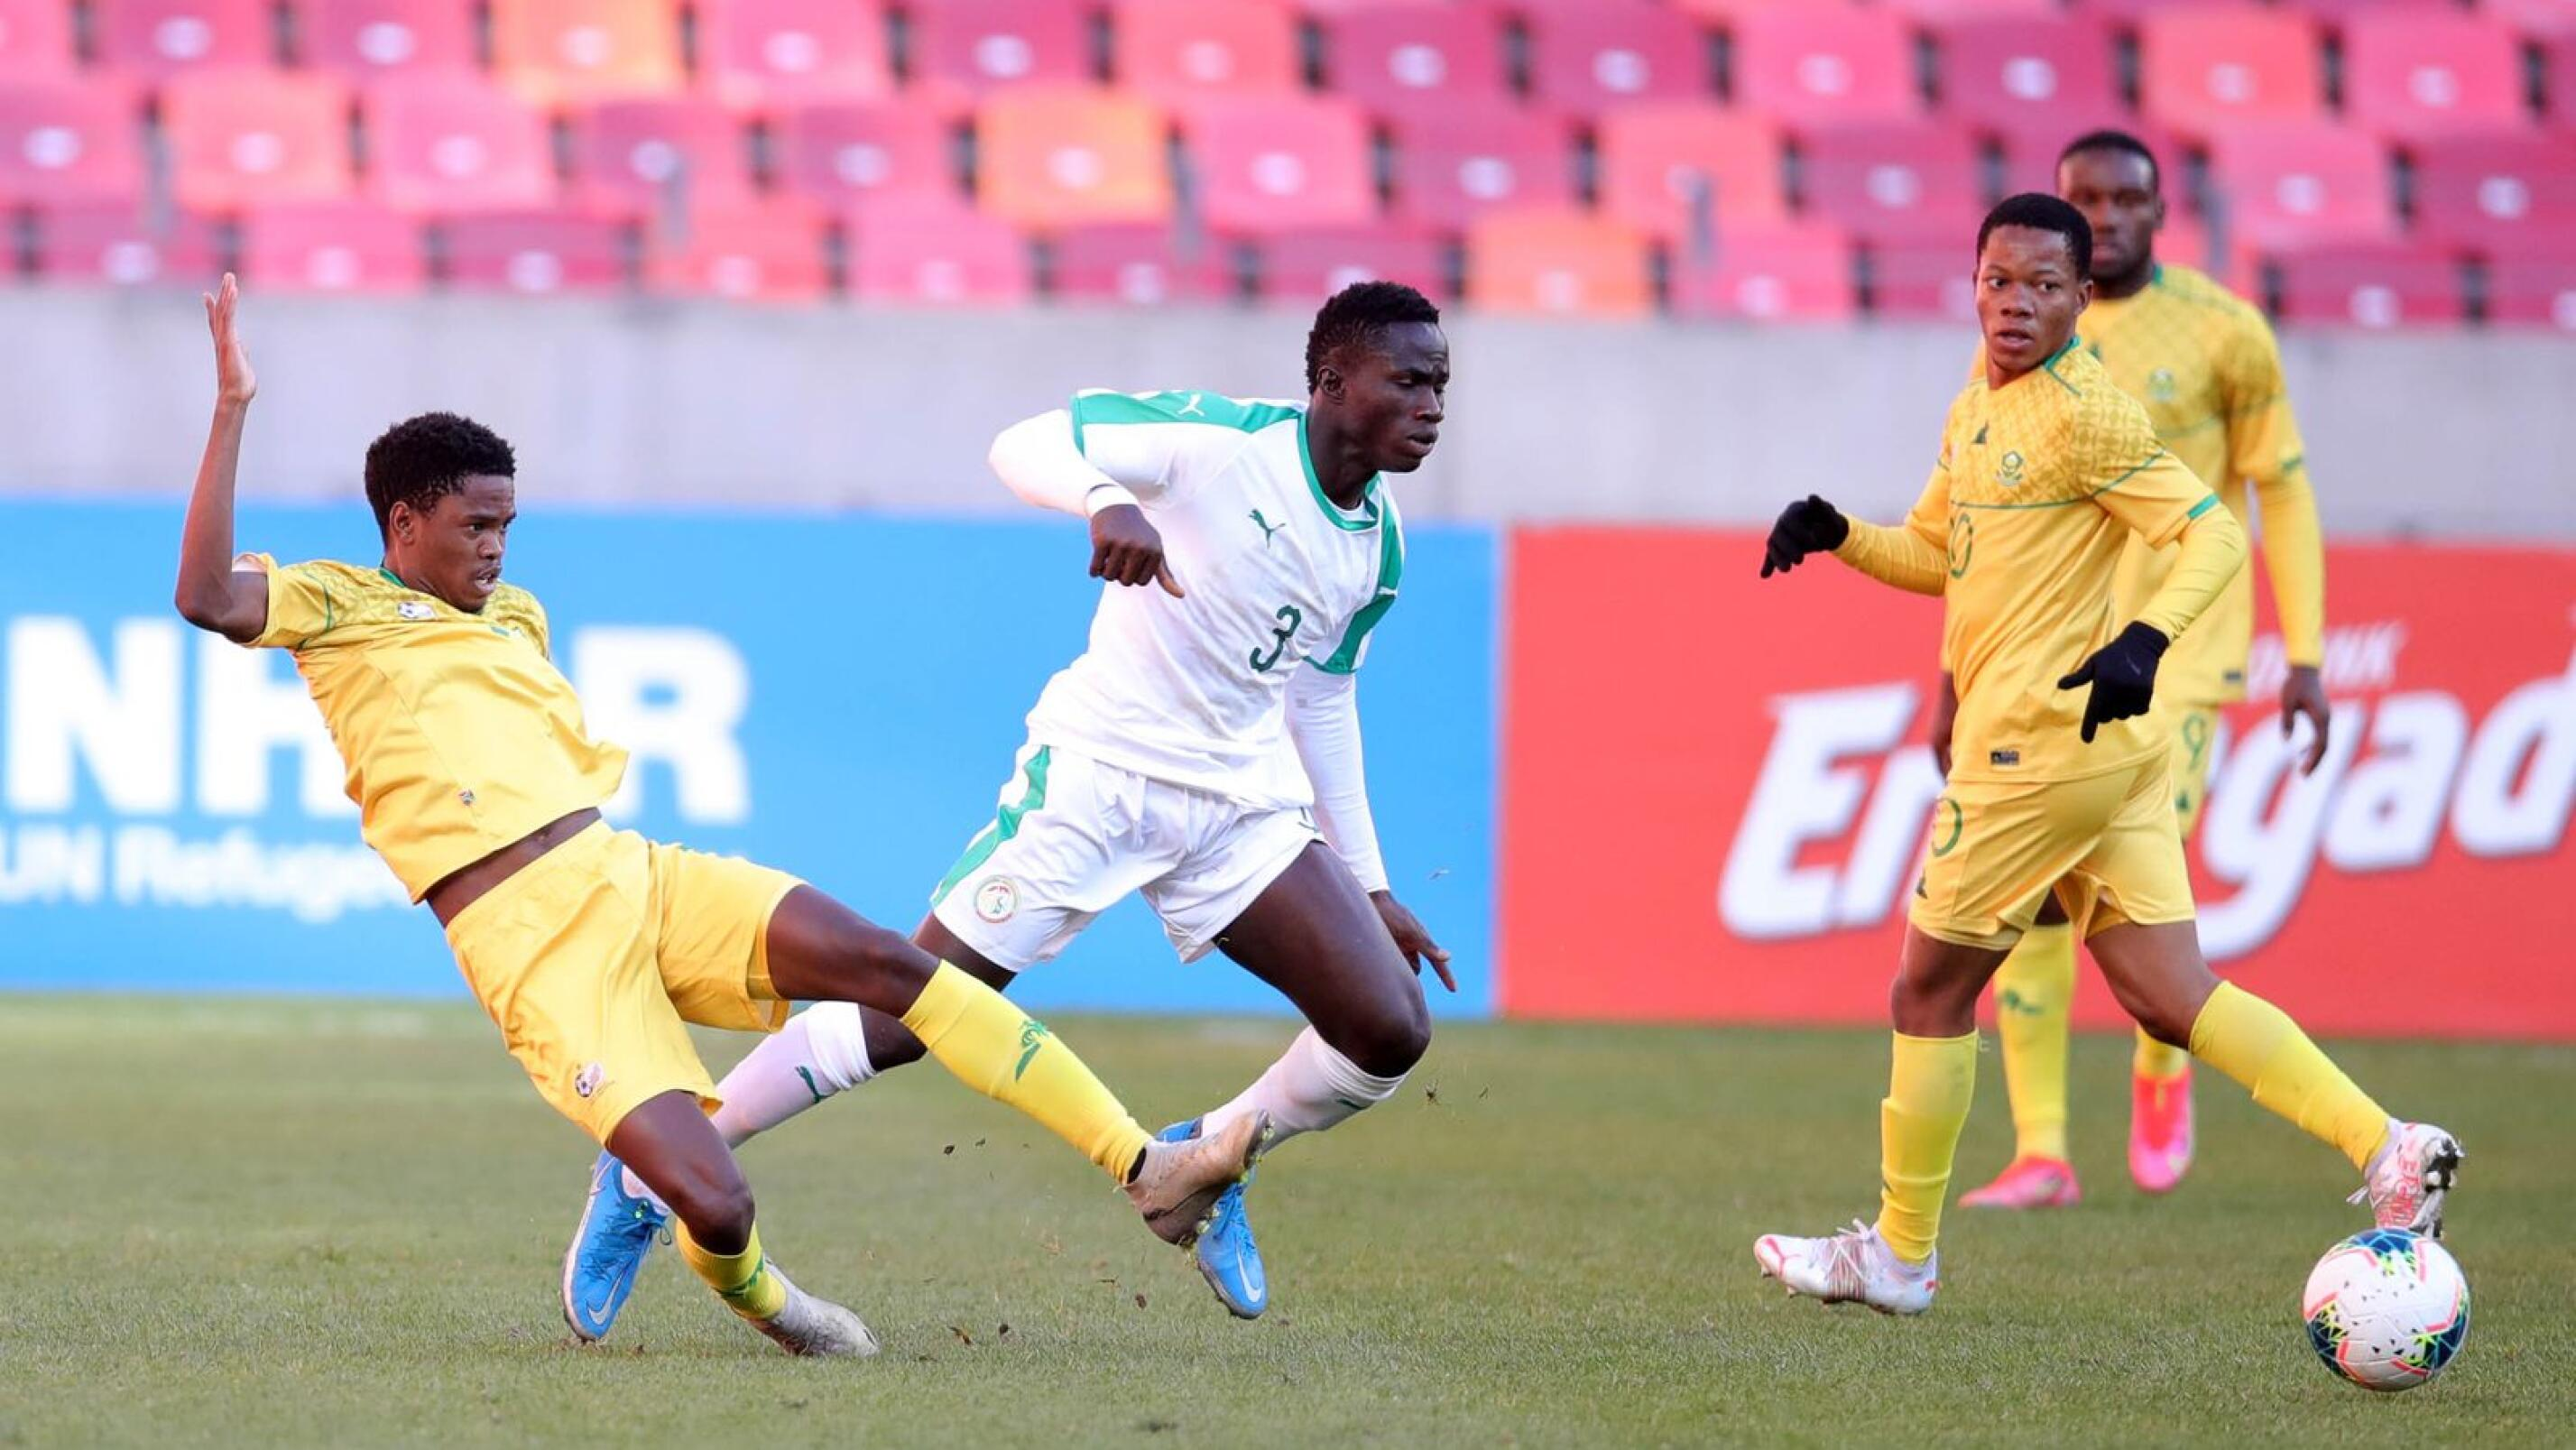 Woula Macire Sane of Senegal is challenged by Sifiso Stanley Ngobeni of South Africa during their 2021 Cosafa Cup final at Nelson Mandela Bay Stadium in Gqebrha on Sunday